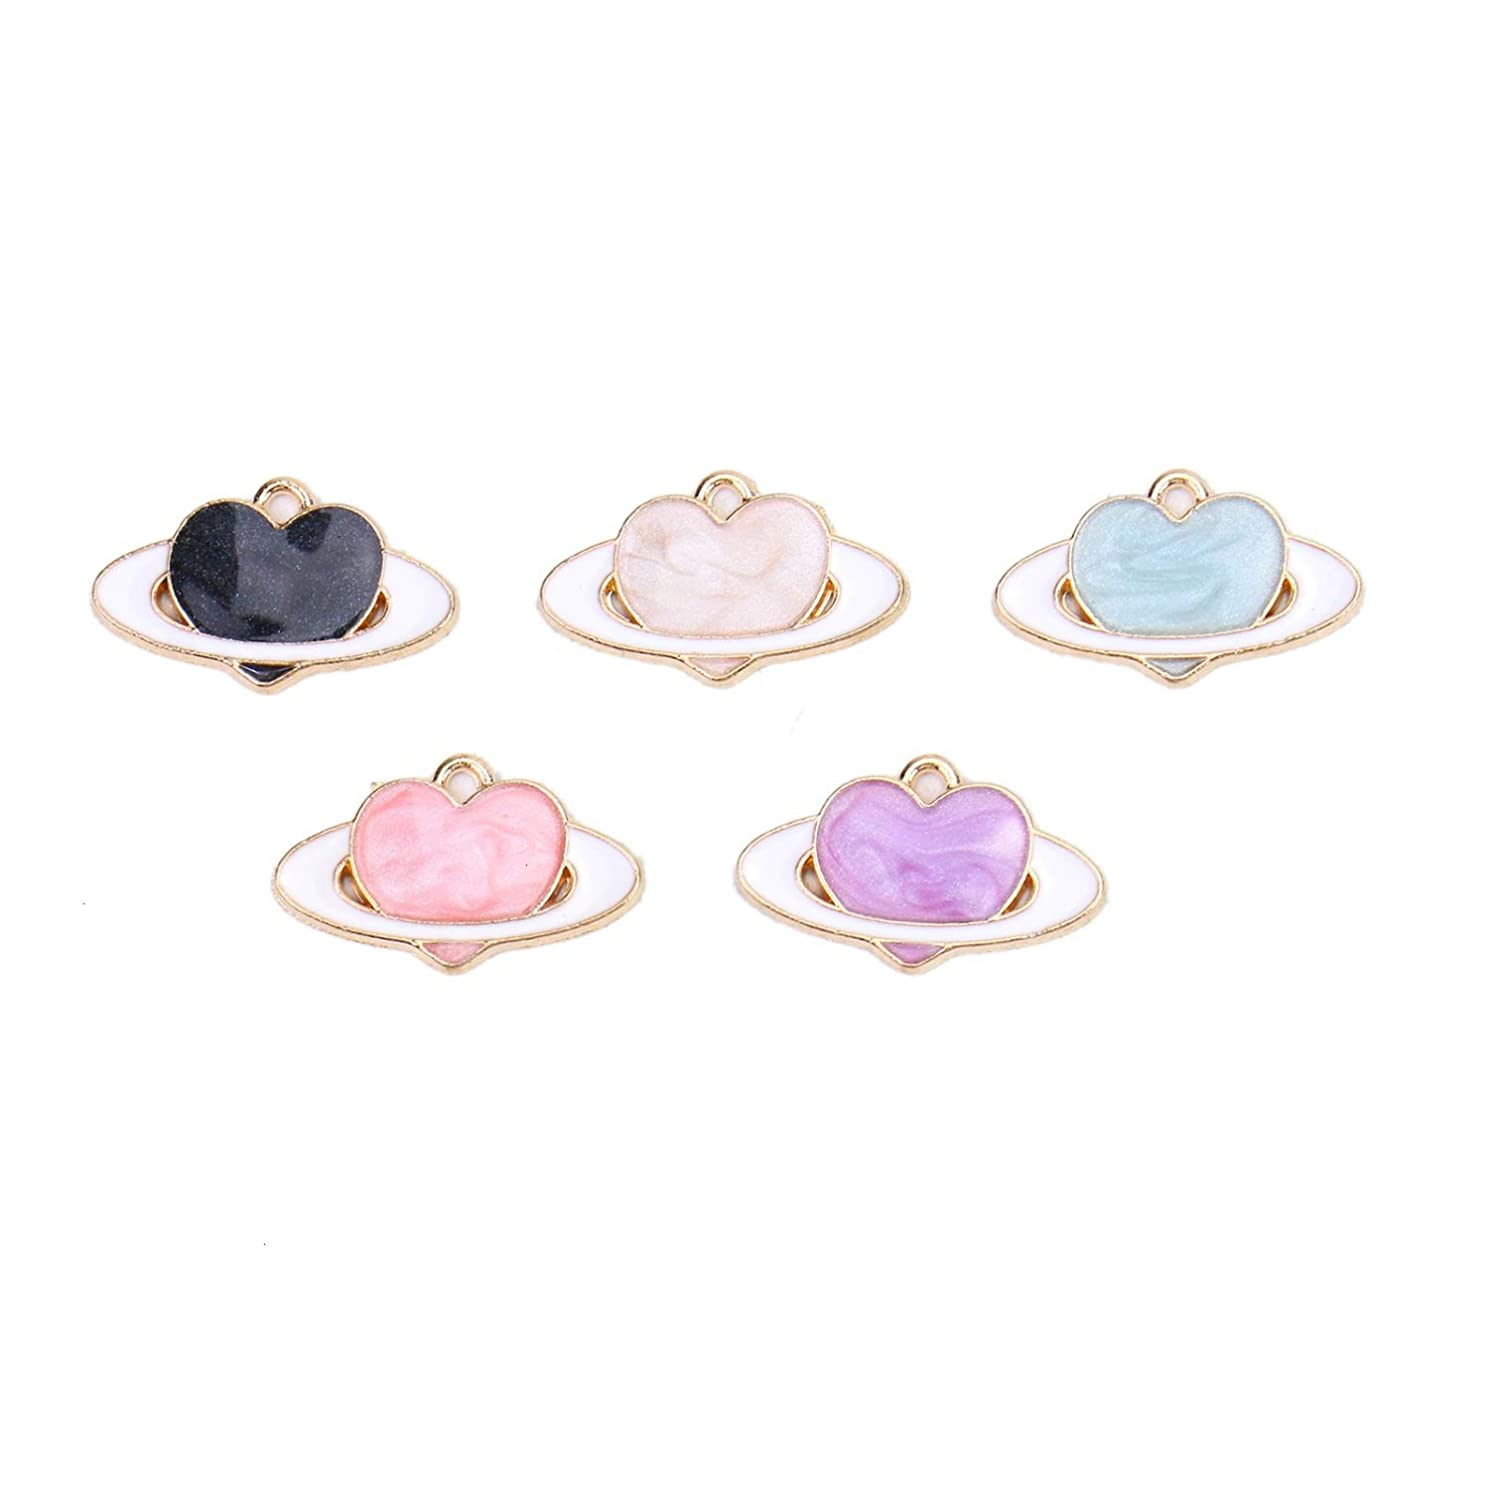 Monrocco 20Pcs Mixed Colors Enamel Heart Charms Pendant Alloy Charms Pendant for Jewelry Making and Crafting